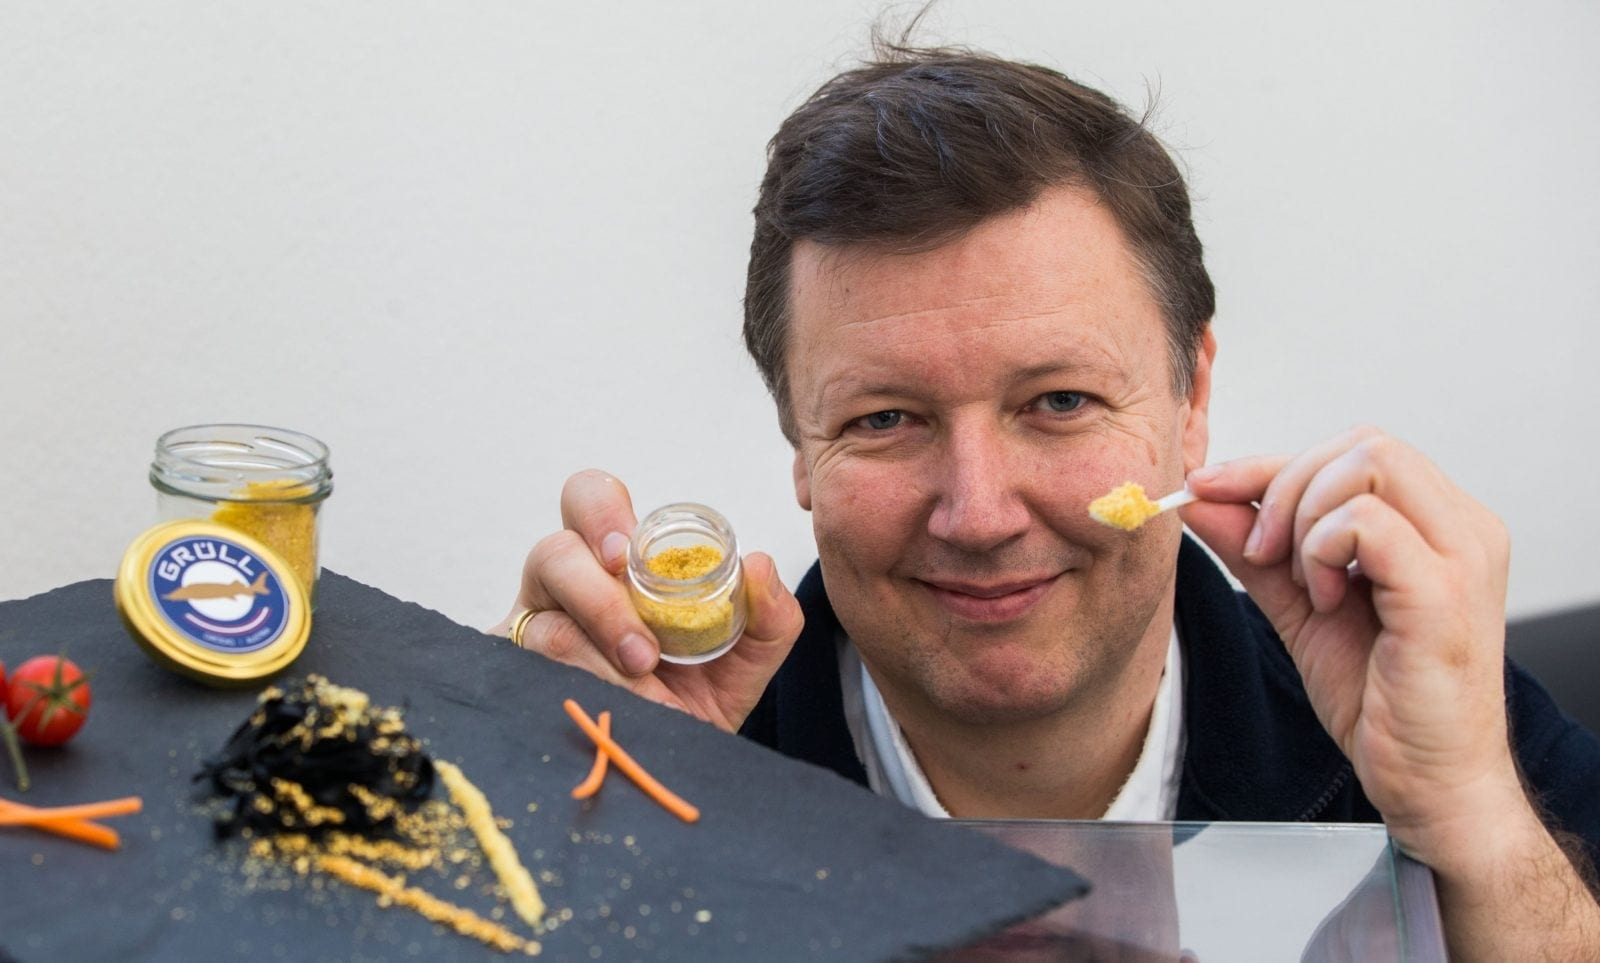 Worlds Most Expensive Food Product - Dried Albino Caviar